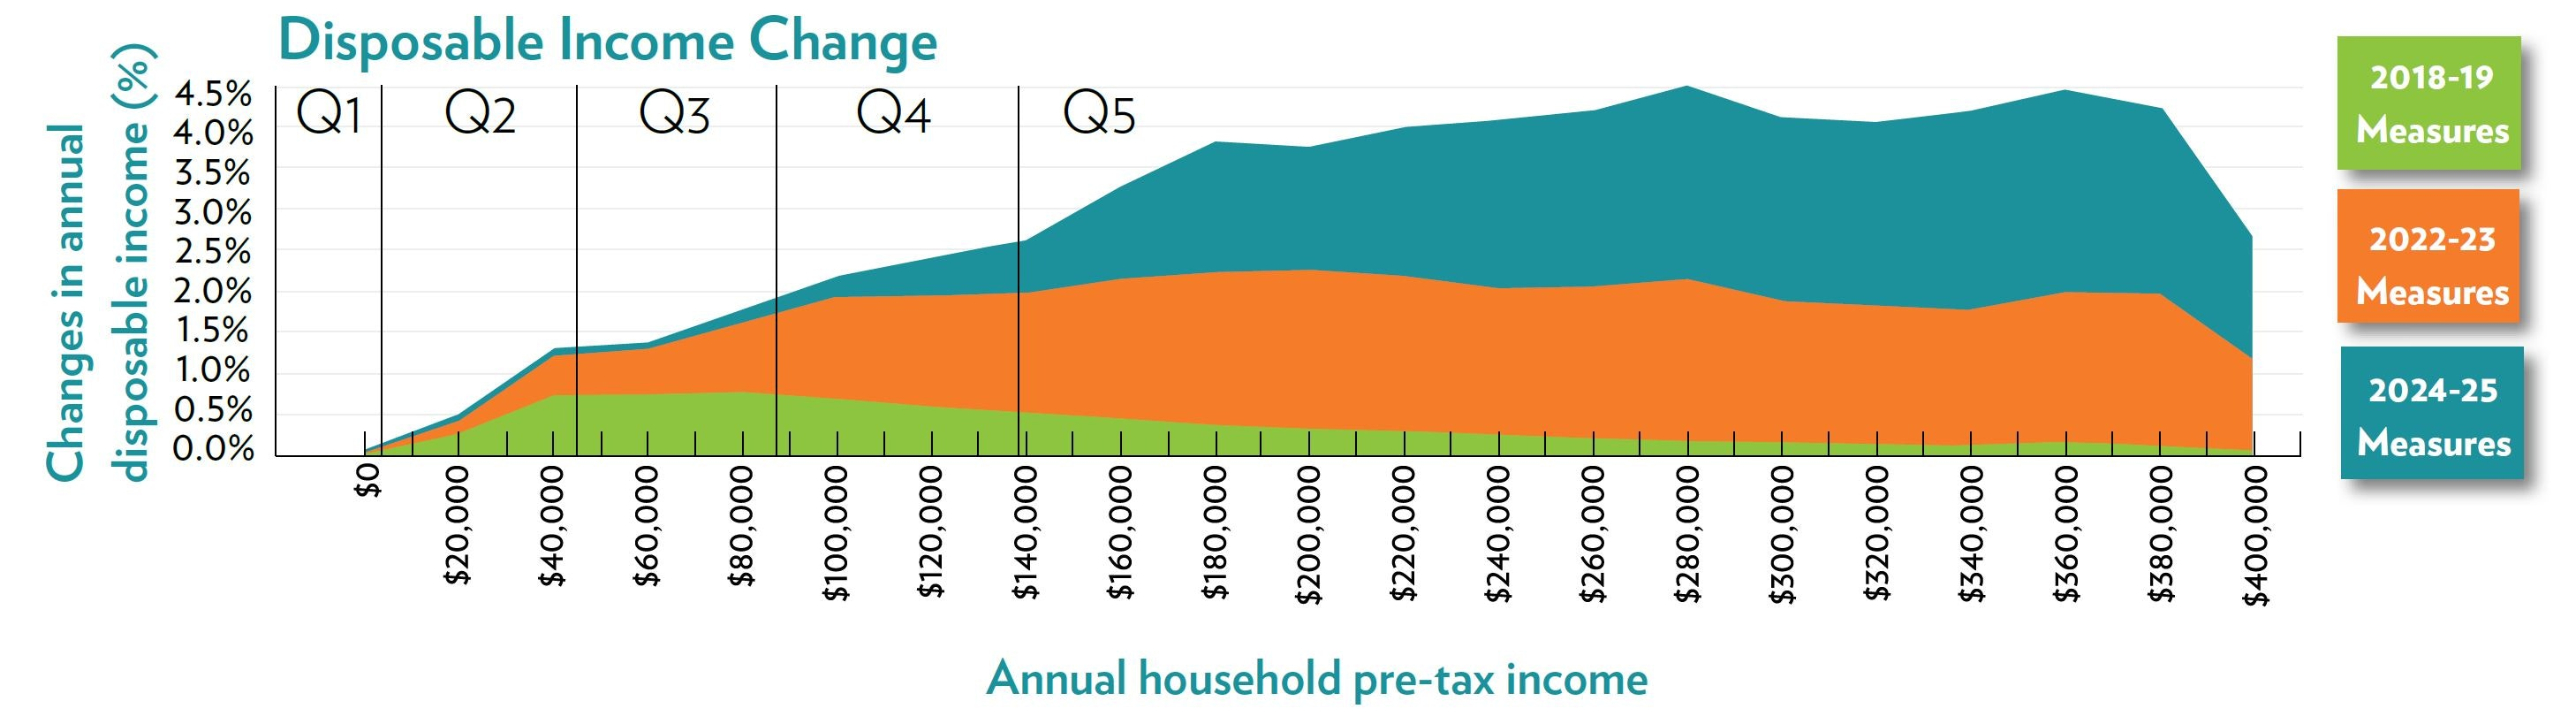 Those future tax cut promises... they're nowhere near as big as you'd think